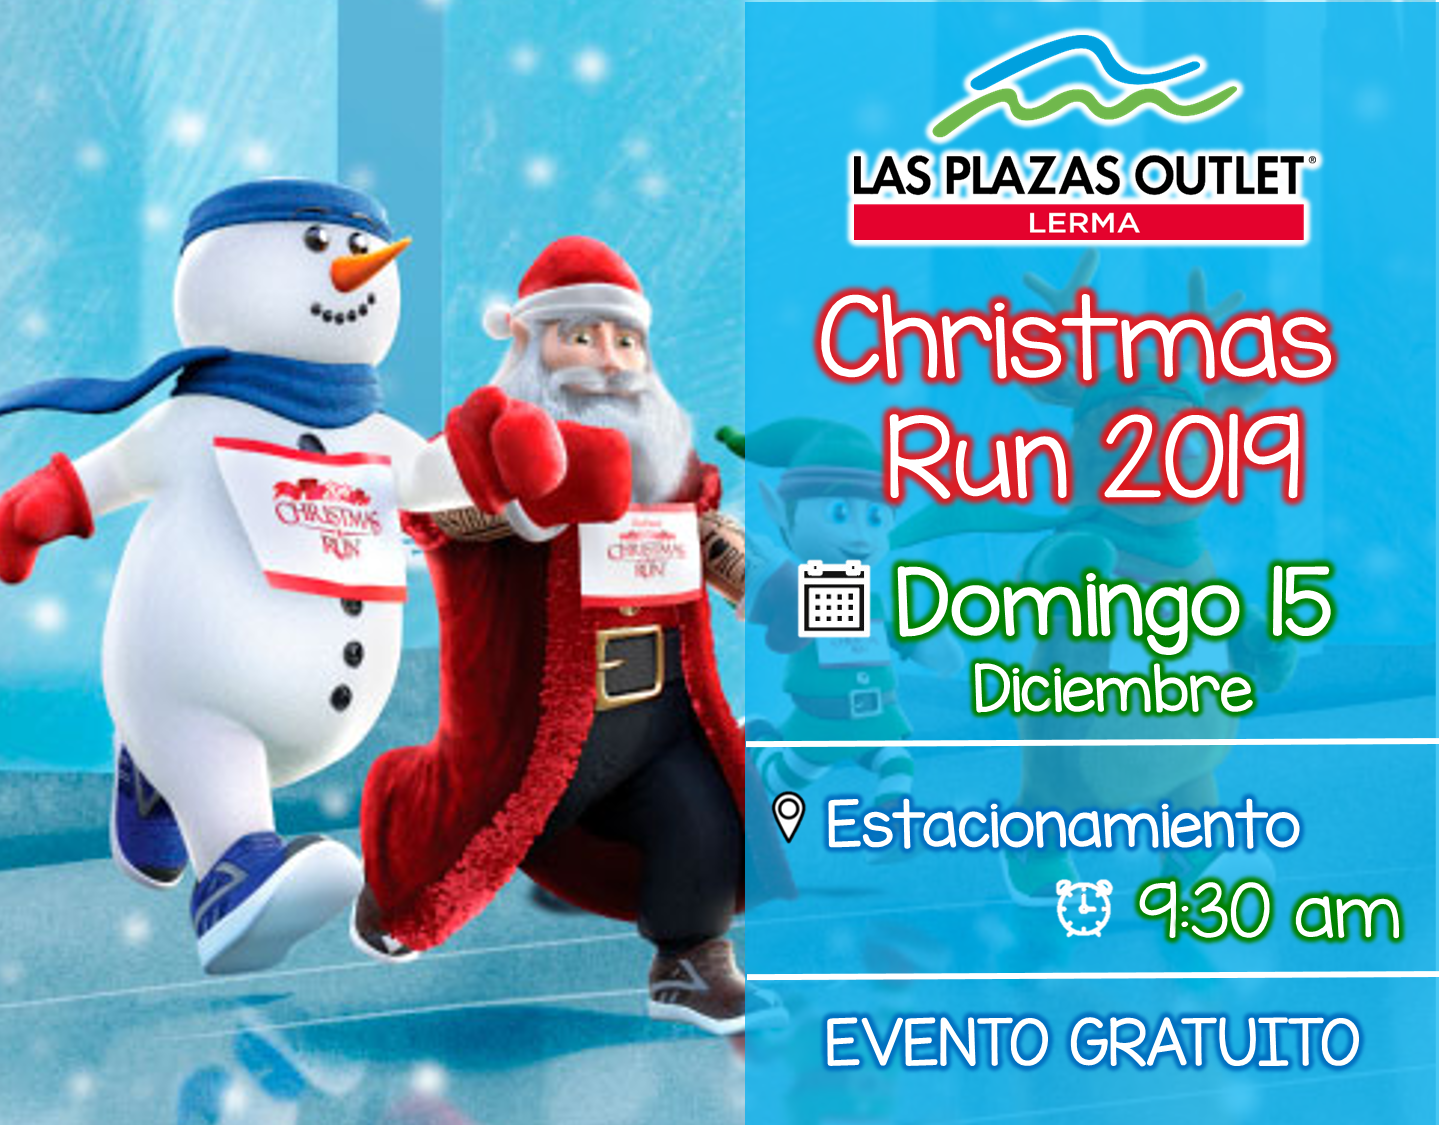 Las Plazas Outlet Lerma - Christmas run